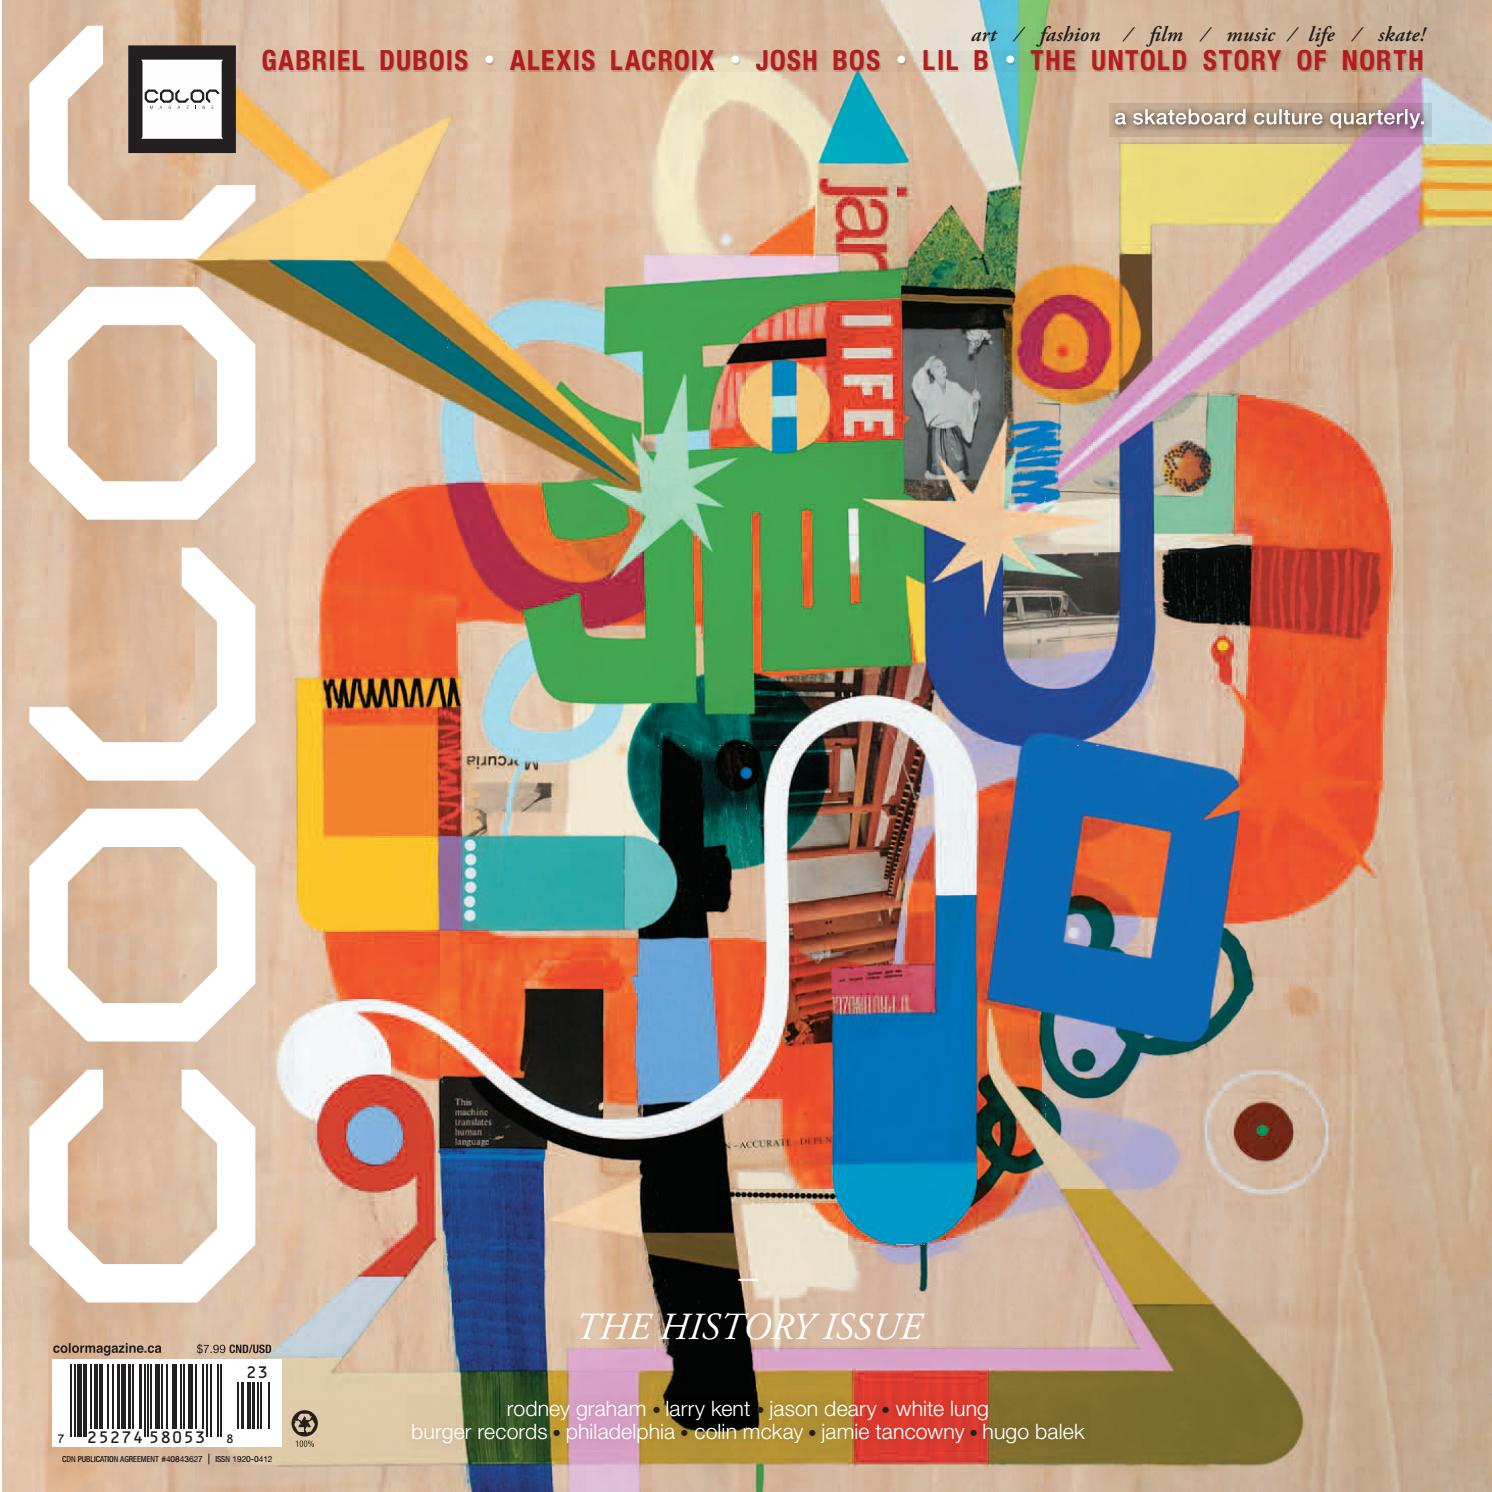 Volume 10, Number 3 by Color Magazine - issuu